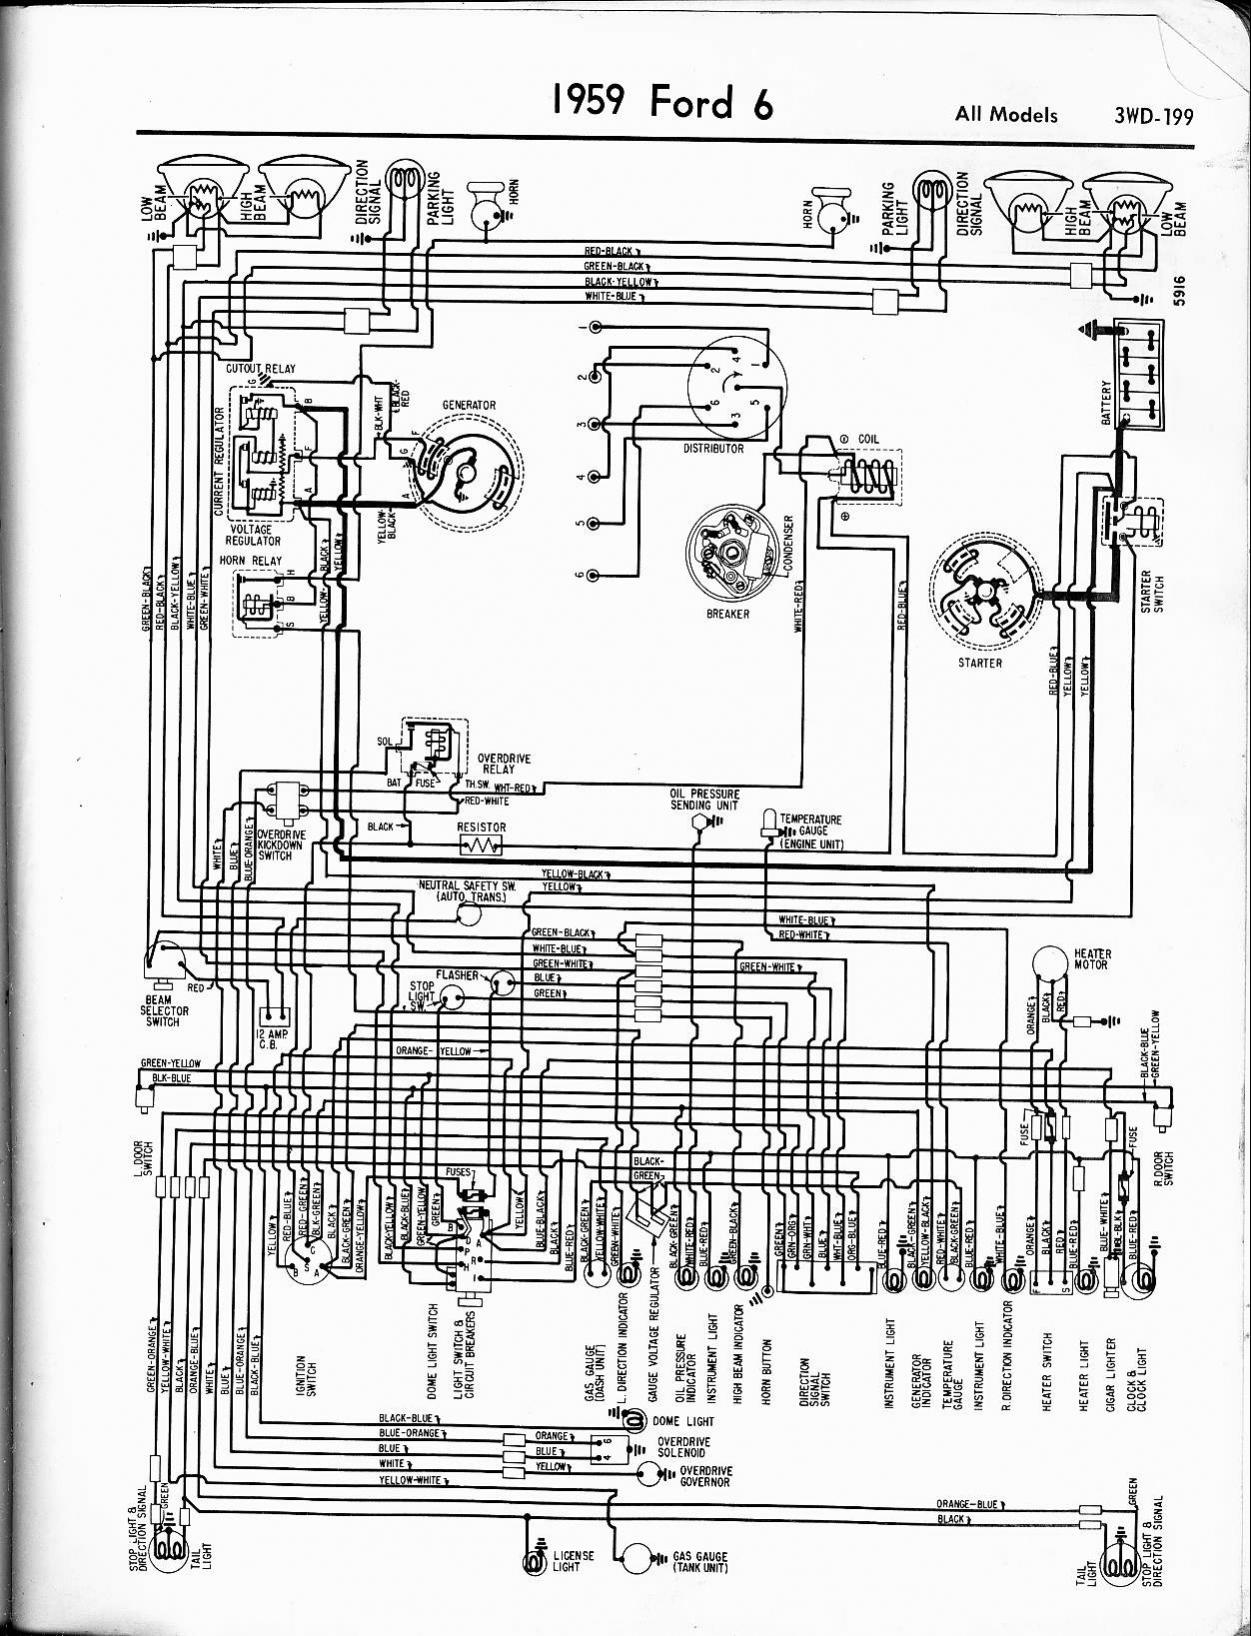 1959 ford f100 wiring harness wiring diagram content